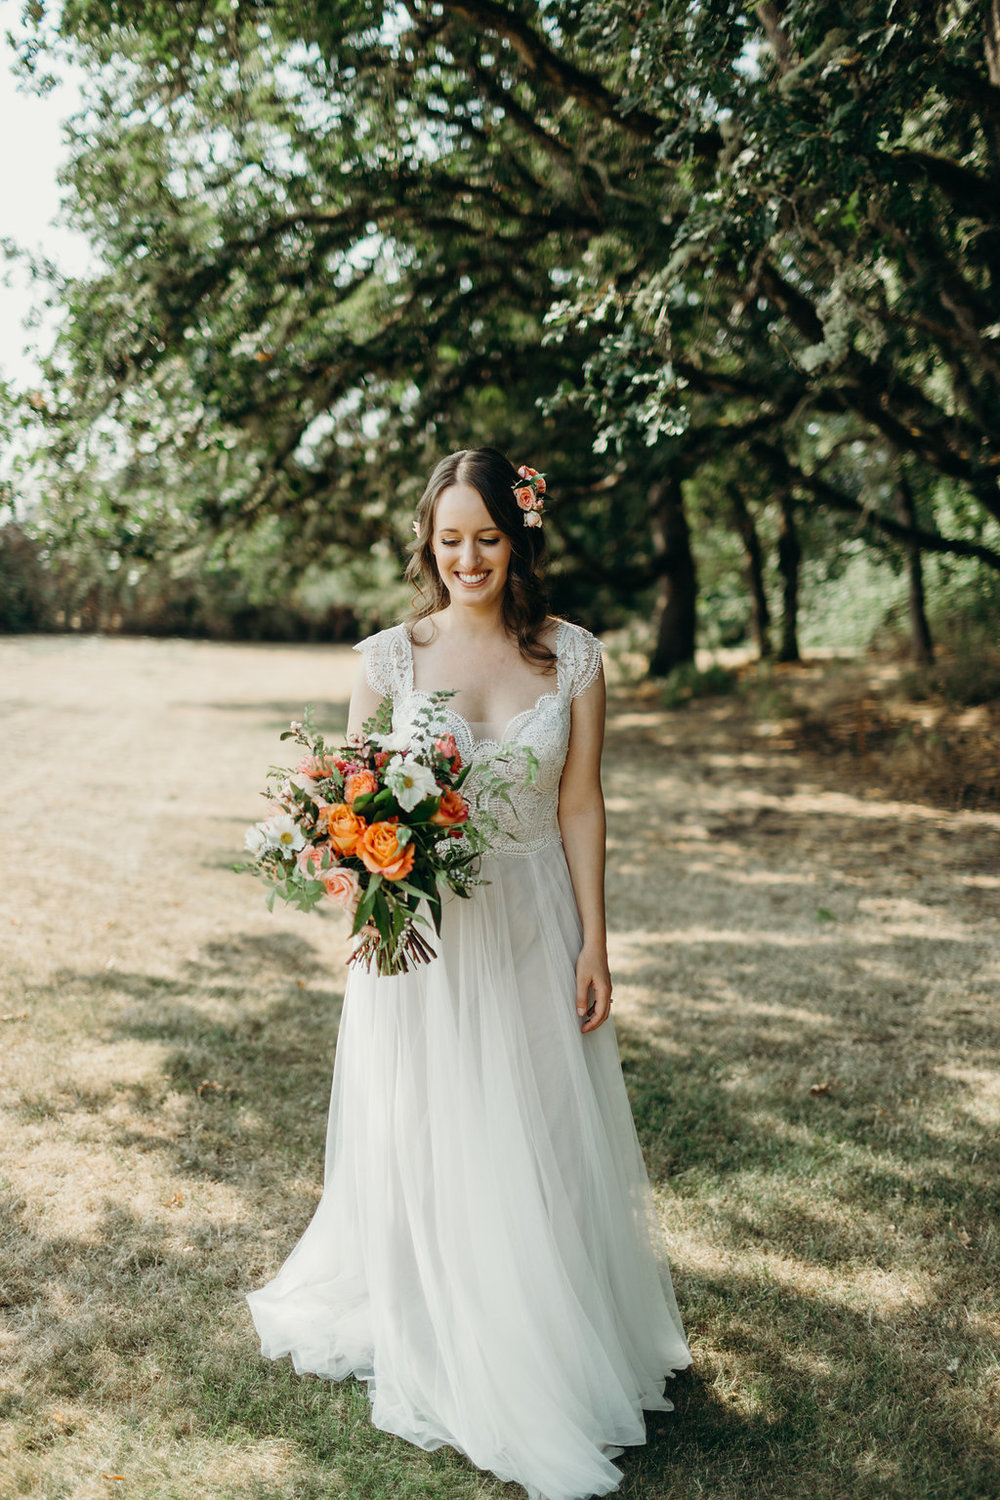 Jasper House Farm Bride